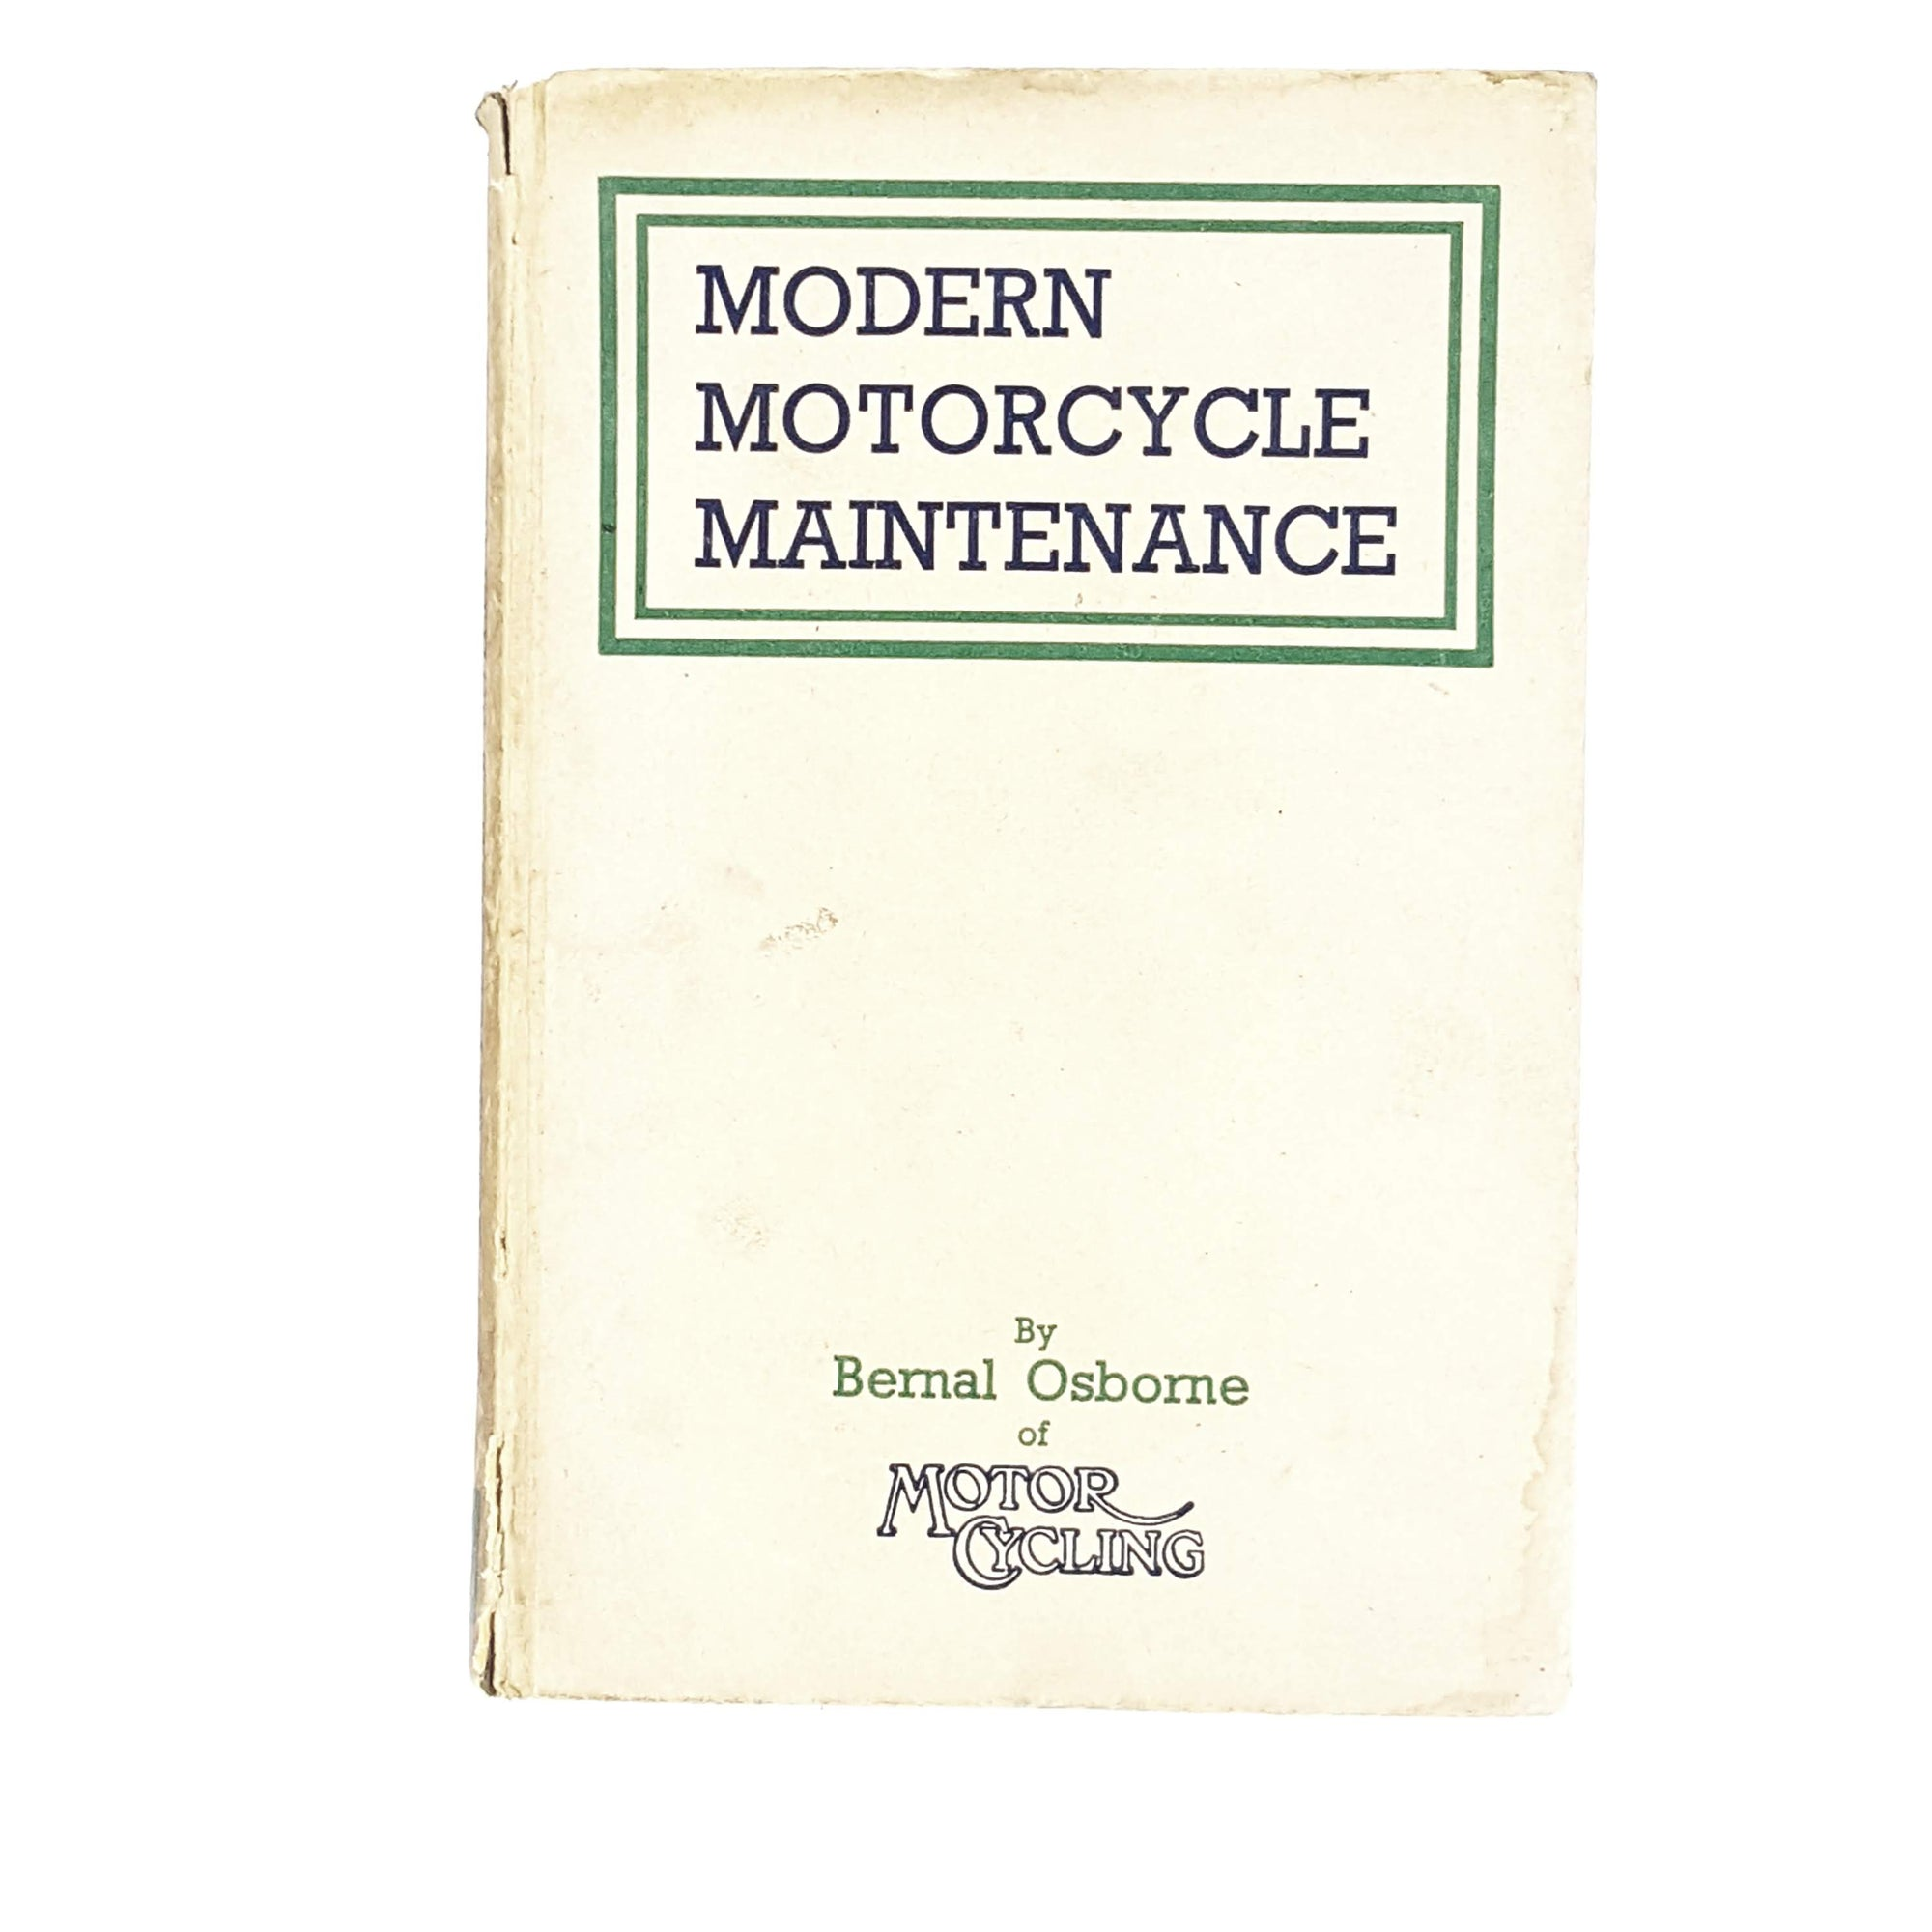 Second Edition Modern Motorcycle Maintainance by Bernal Osborne 1952